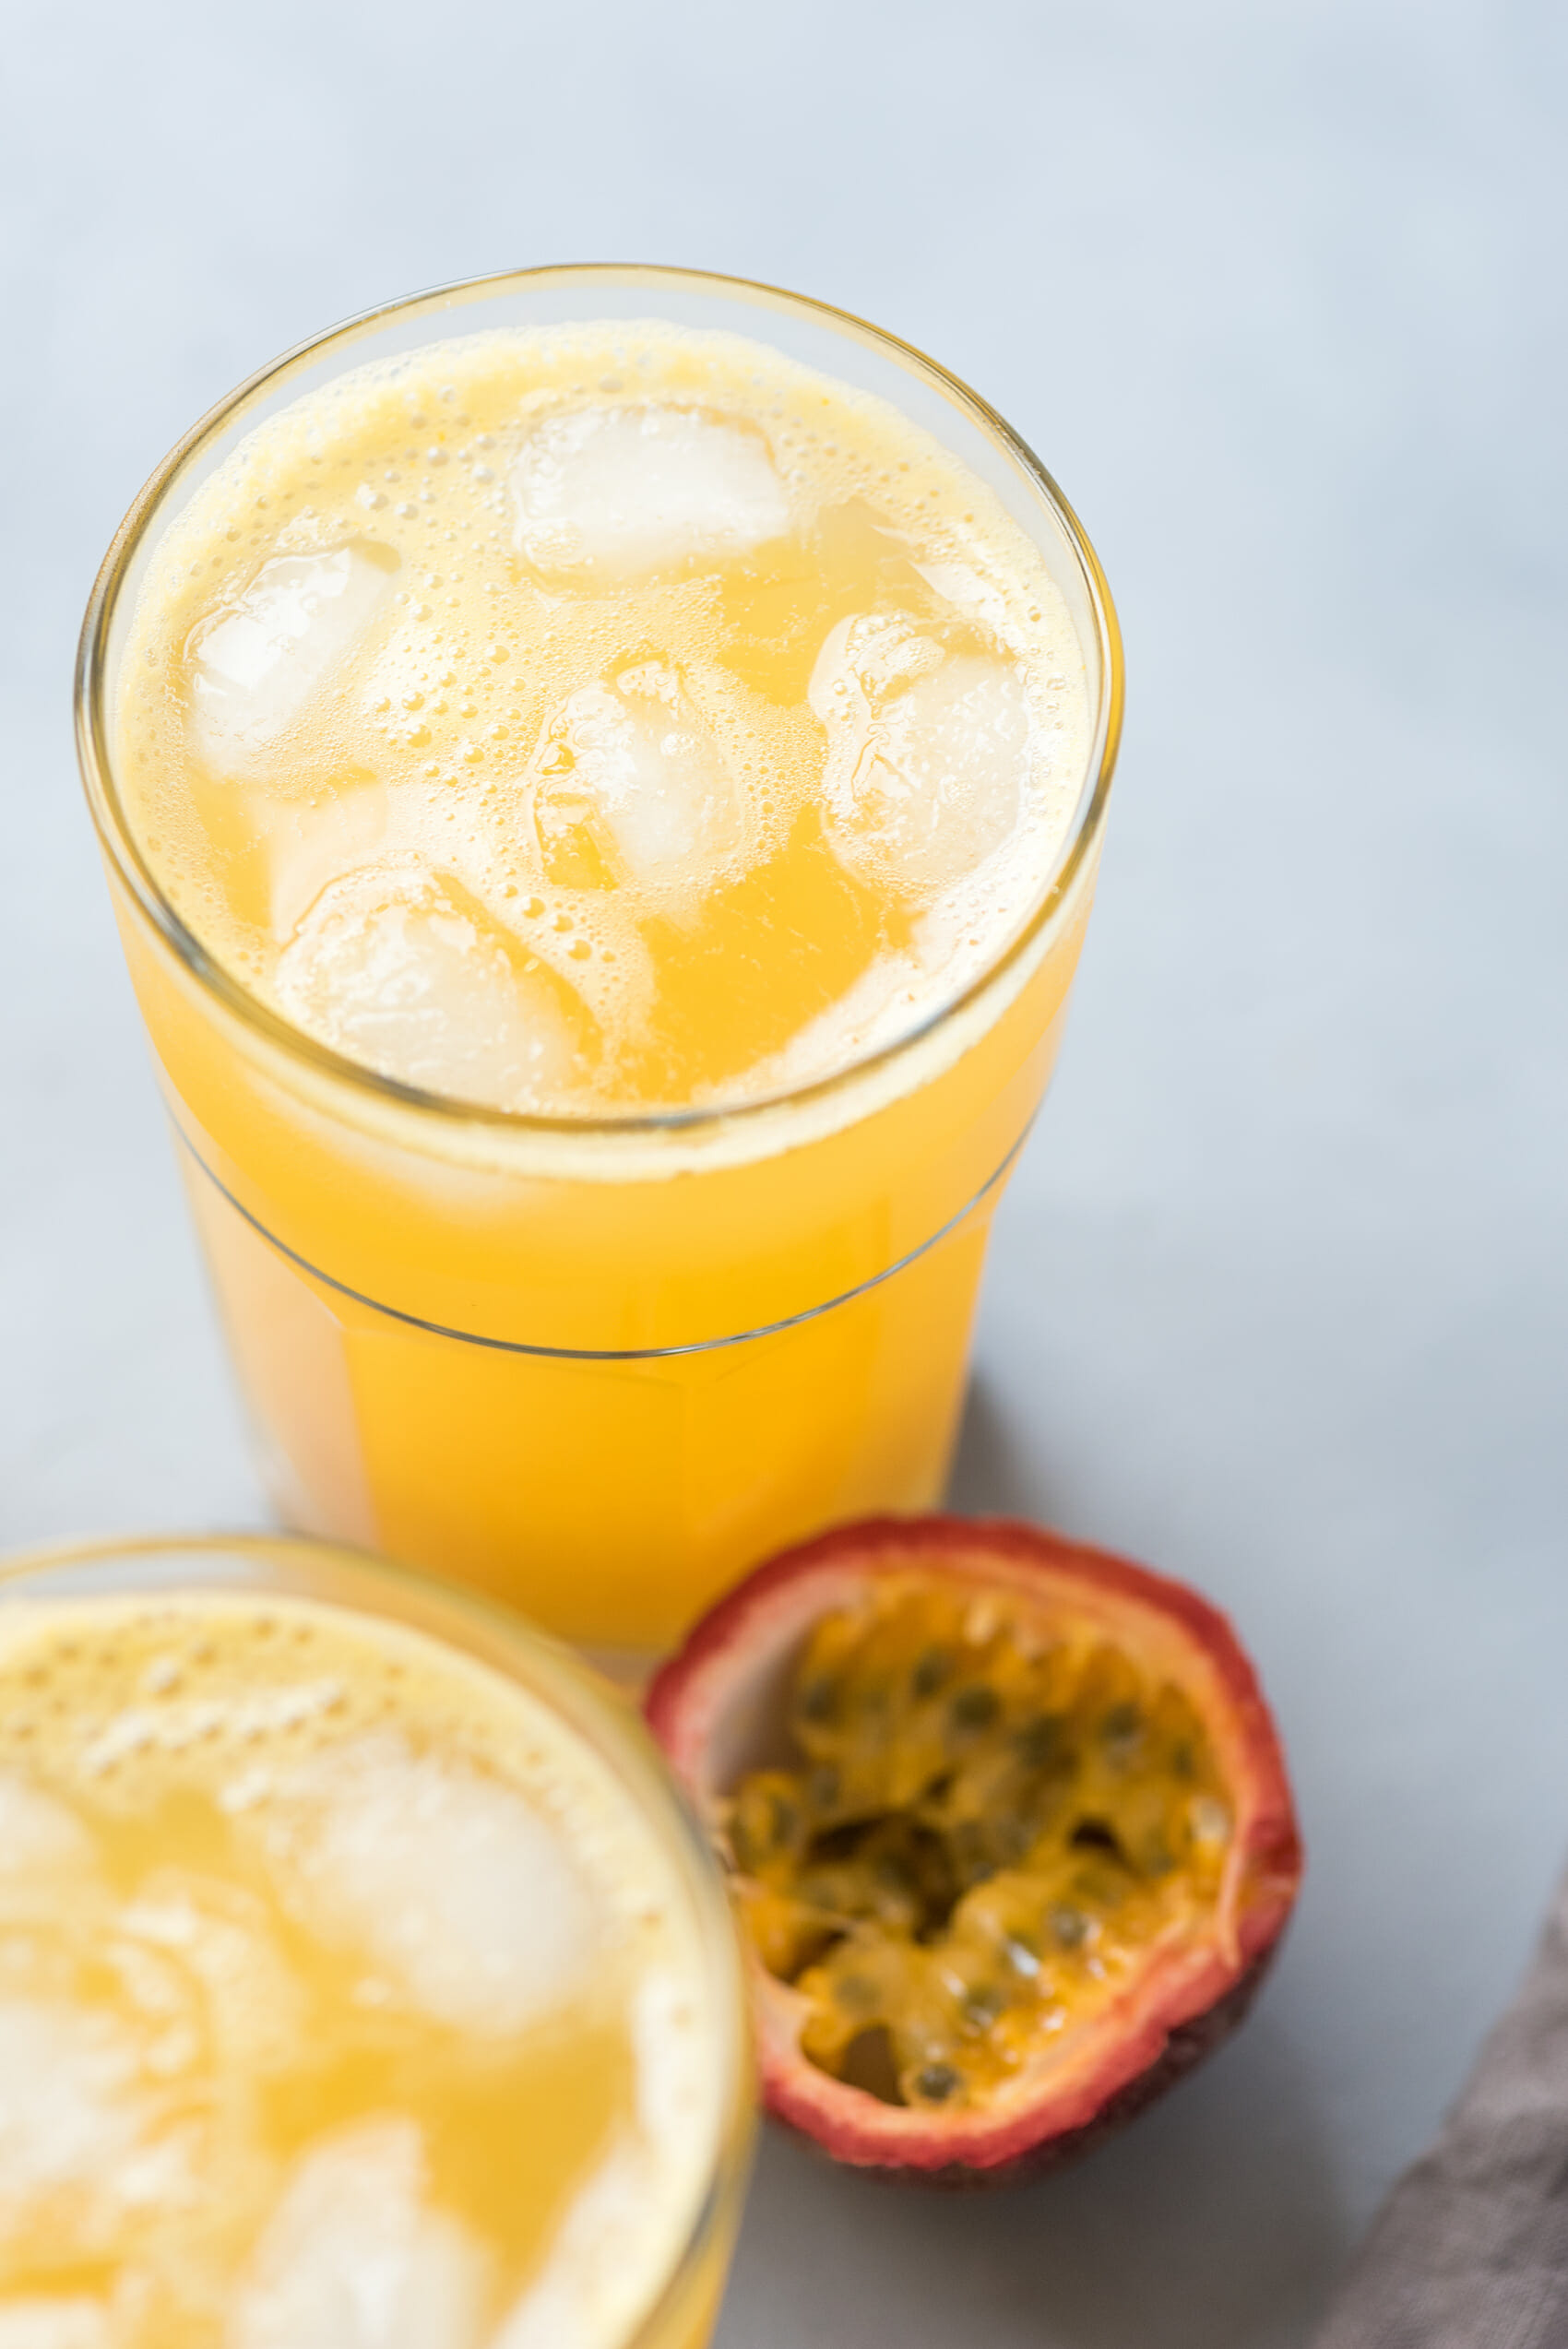 Limonade fruit de la passion - Lilie Bakery